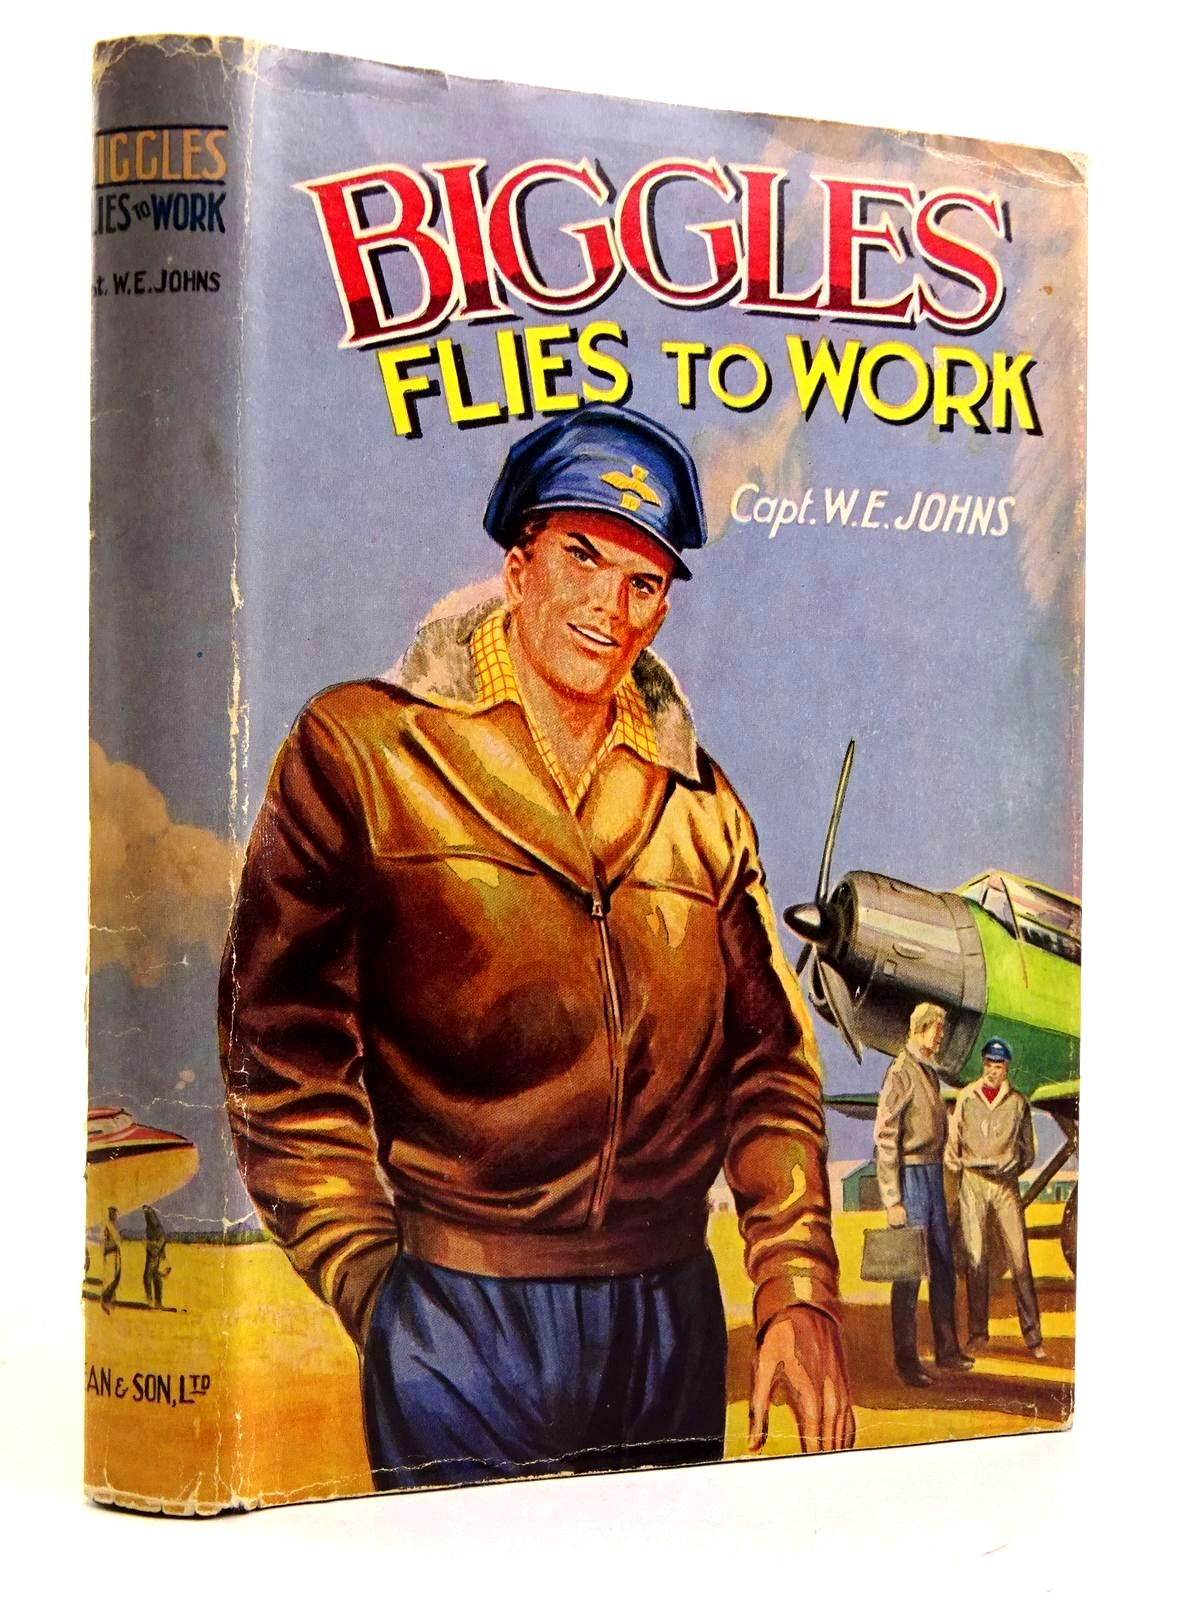 Photo of BIGGLES FLIES TO WORK written by Johns, W.E. published by Dean & Son Ltd. (STOCK CODE: 2131729)  for sale by Stella & Rose's Books